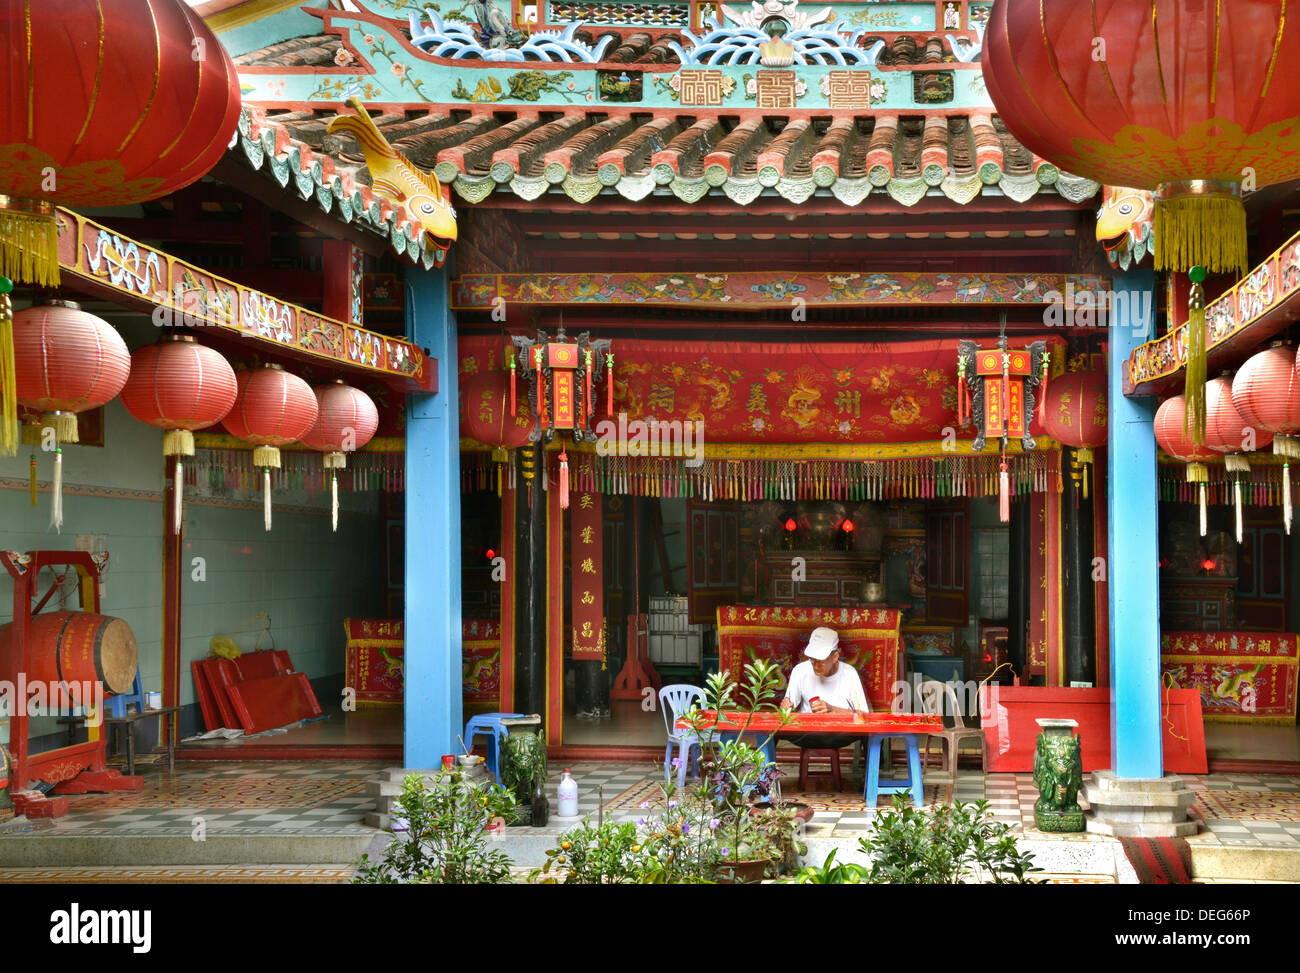 Chinese clan house, Phan Thiet, Vietnam, Indochina, Southeast Asia, Asia - Stock Image